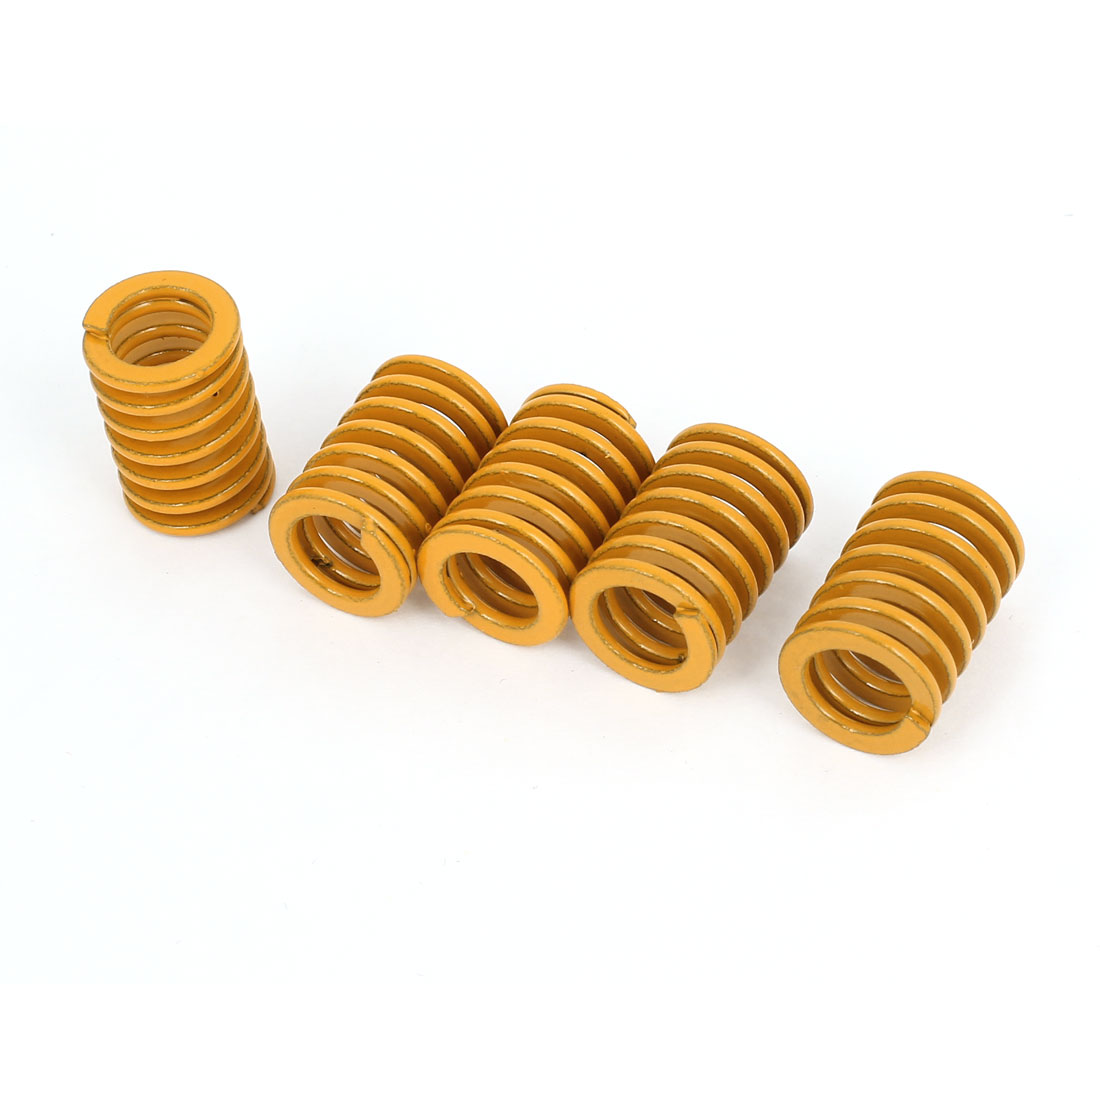 9mm x 14mm x 20mm Rectangular Section Mold Mould Die Spring Yellow 5 pcs